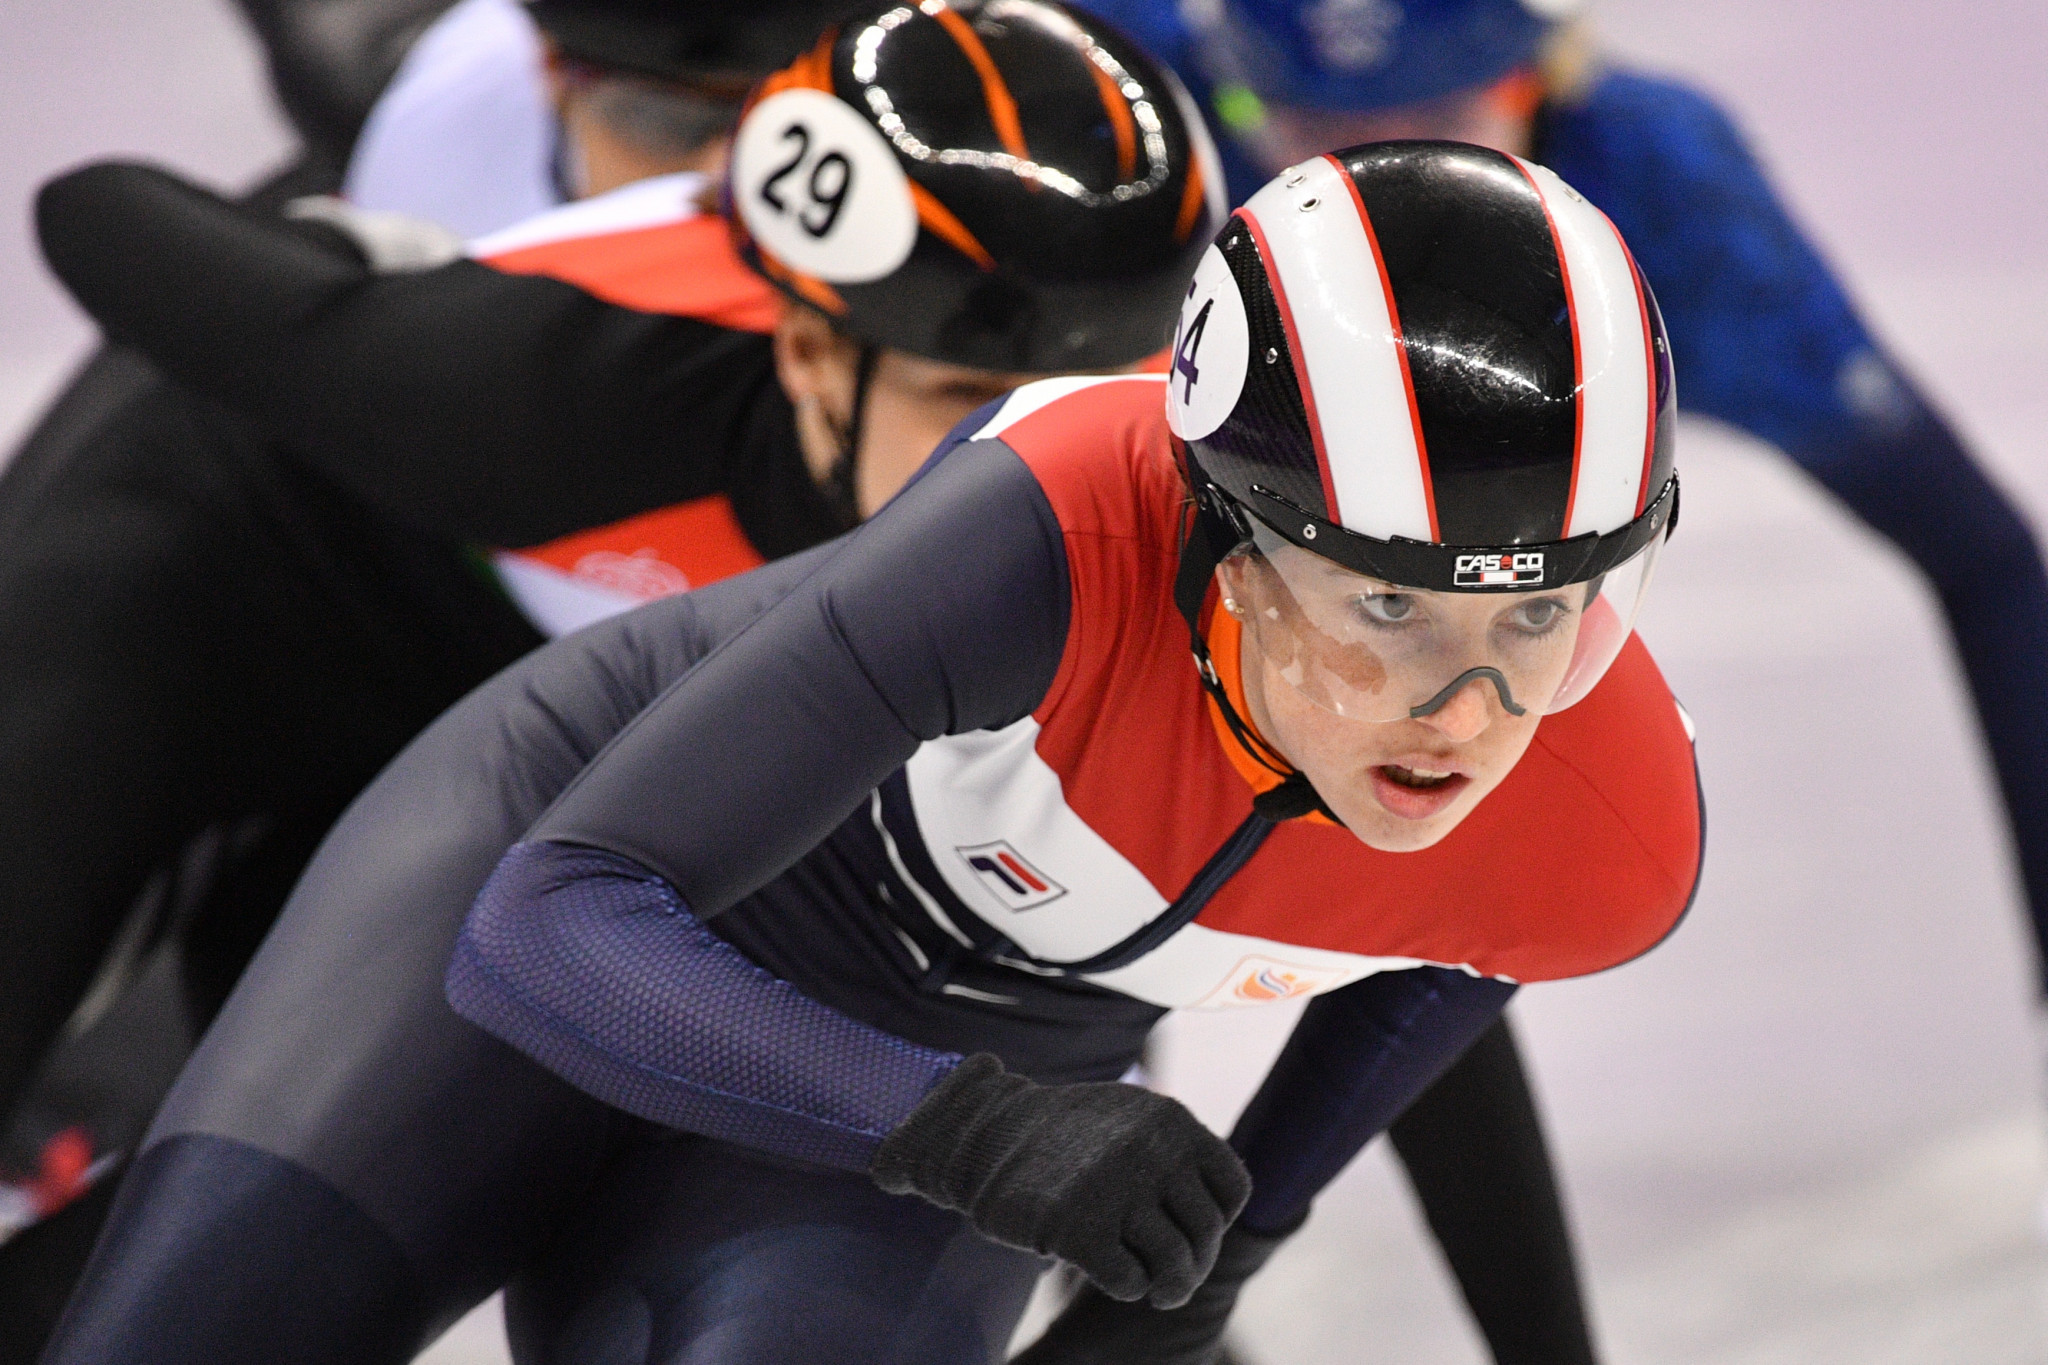 Dutch short track speed skater Lara van Ruijven has died aged 27 after falling ill last month ©Getty Images